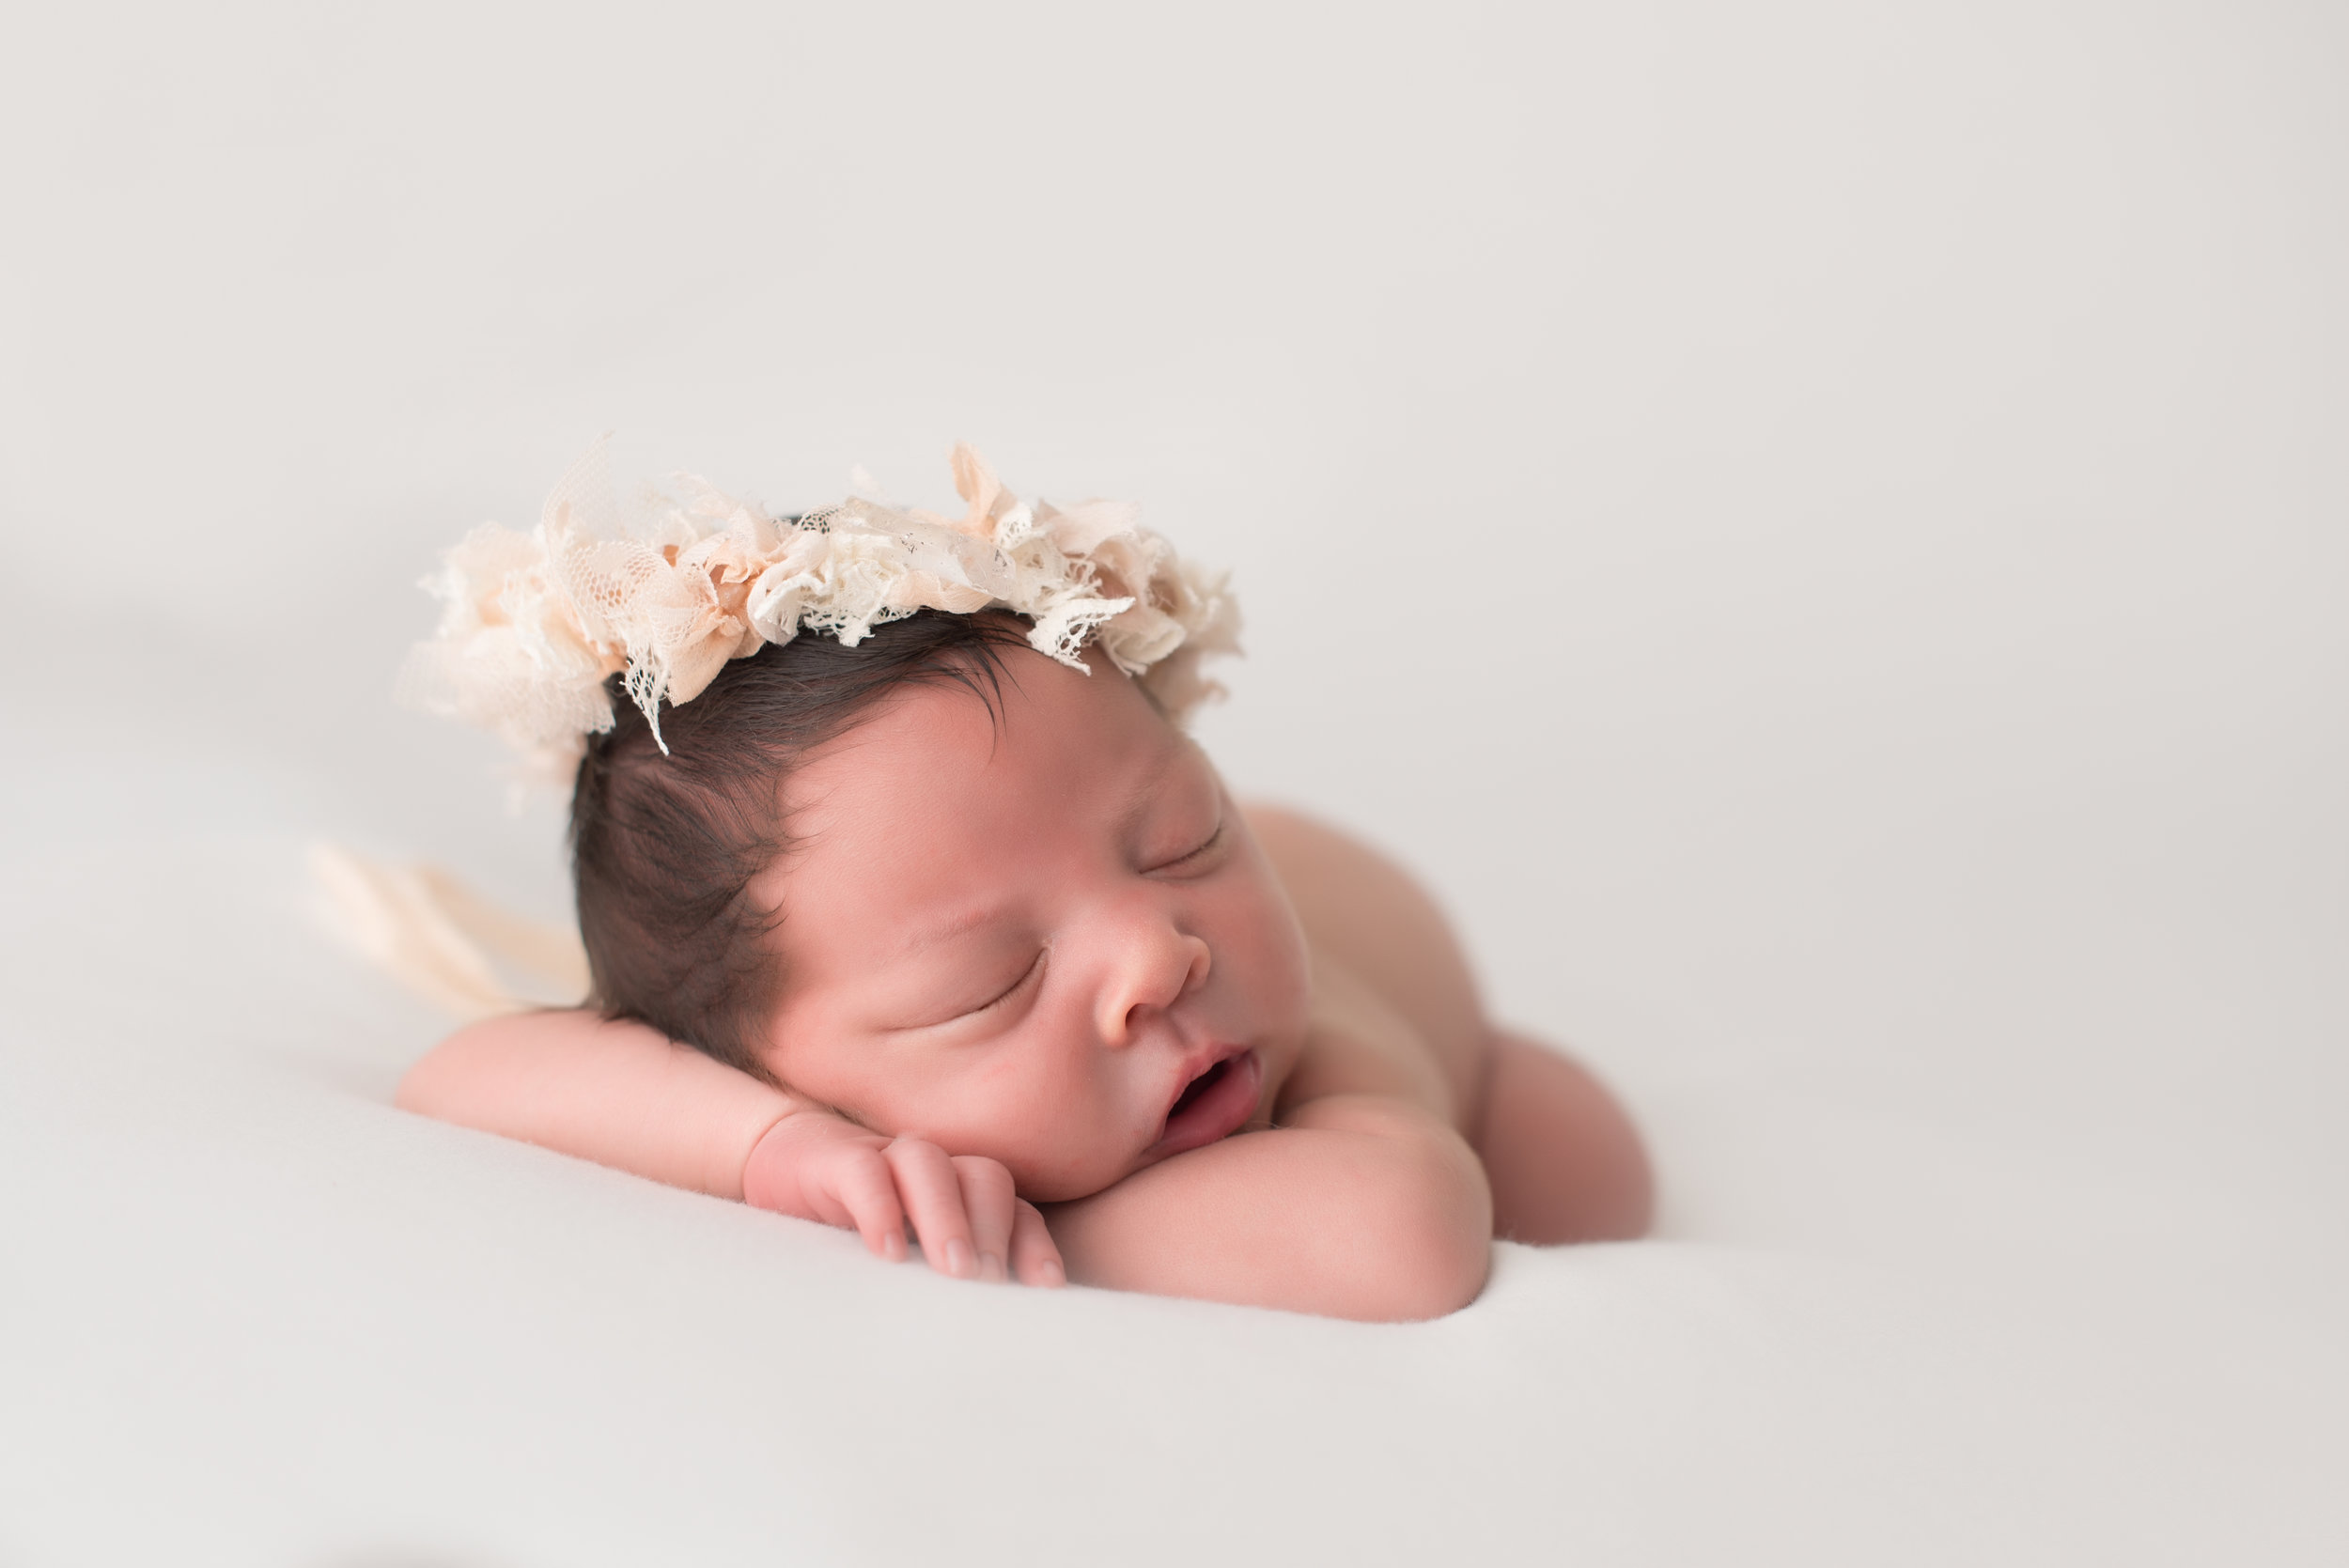 Arcadia-Boutique-Newborn-Photographer-soft-studio-newborn-session-406.jpg